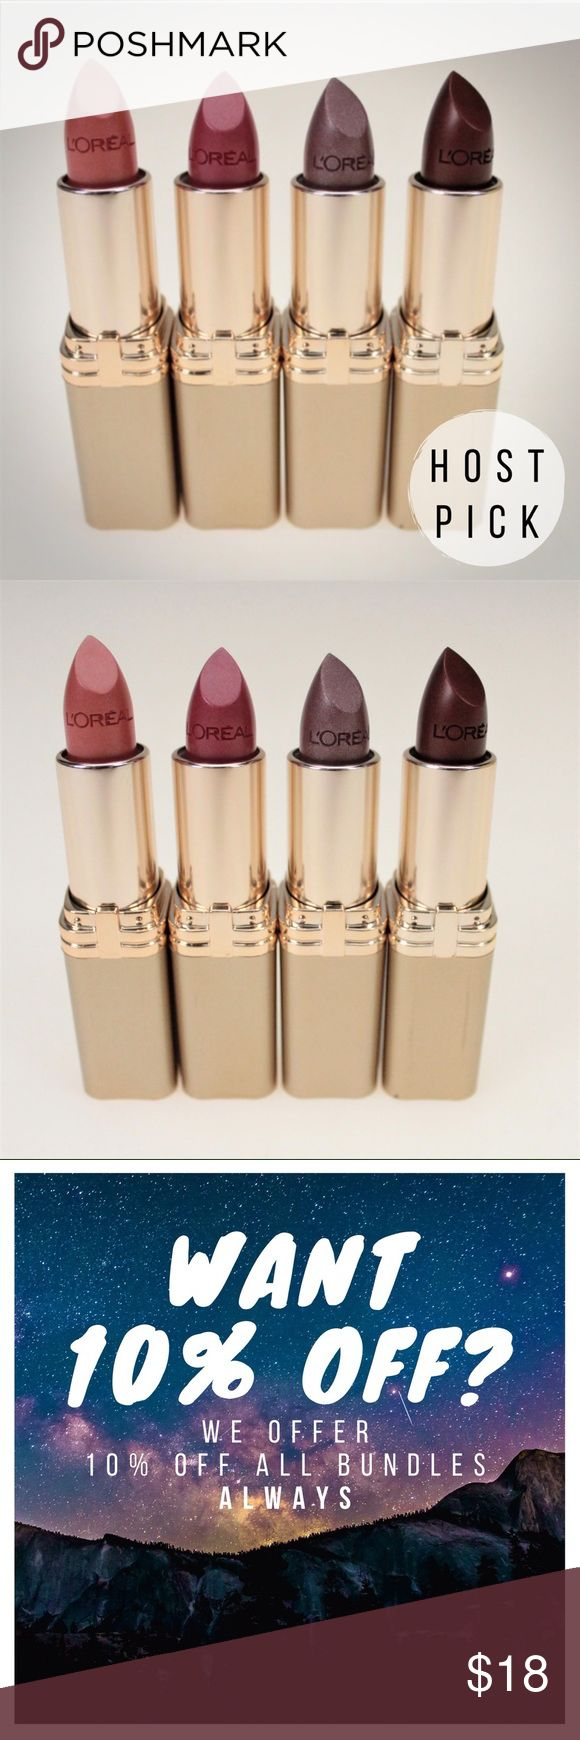 L'Oreal Colour Riche Lipstick Set of 4 This set comes with 4 tubes of Colour Riche moisturizing lipstick in 417 Peach Fuzz, 580 Peony Pink, 760 Silverstone, & 825 Bronzine. All four are brand new and have never been swatched. L'Oreal Makeup Lipstick